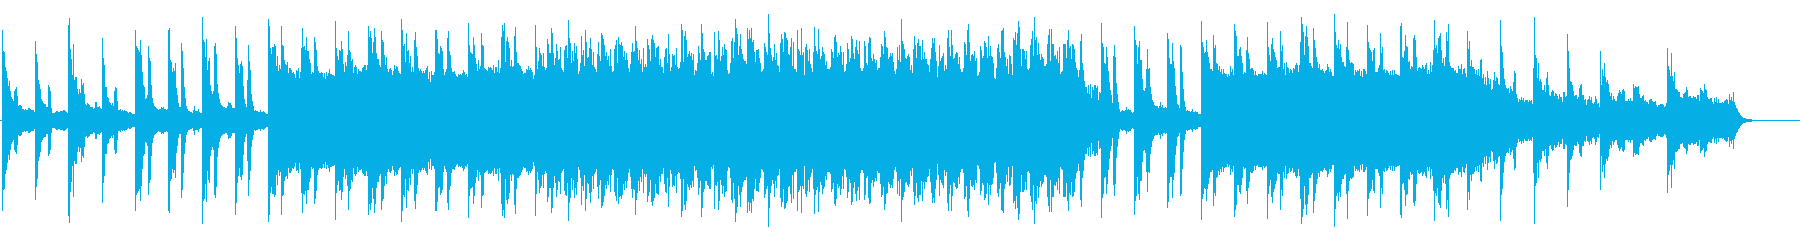 BGM with a mysterious and ethnic impression's reproduced waveform